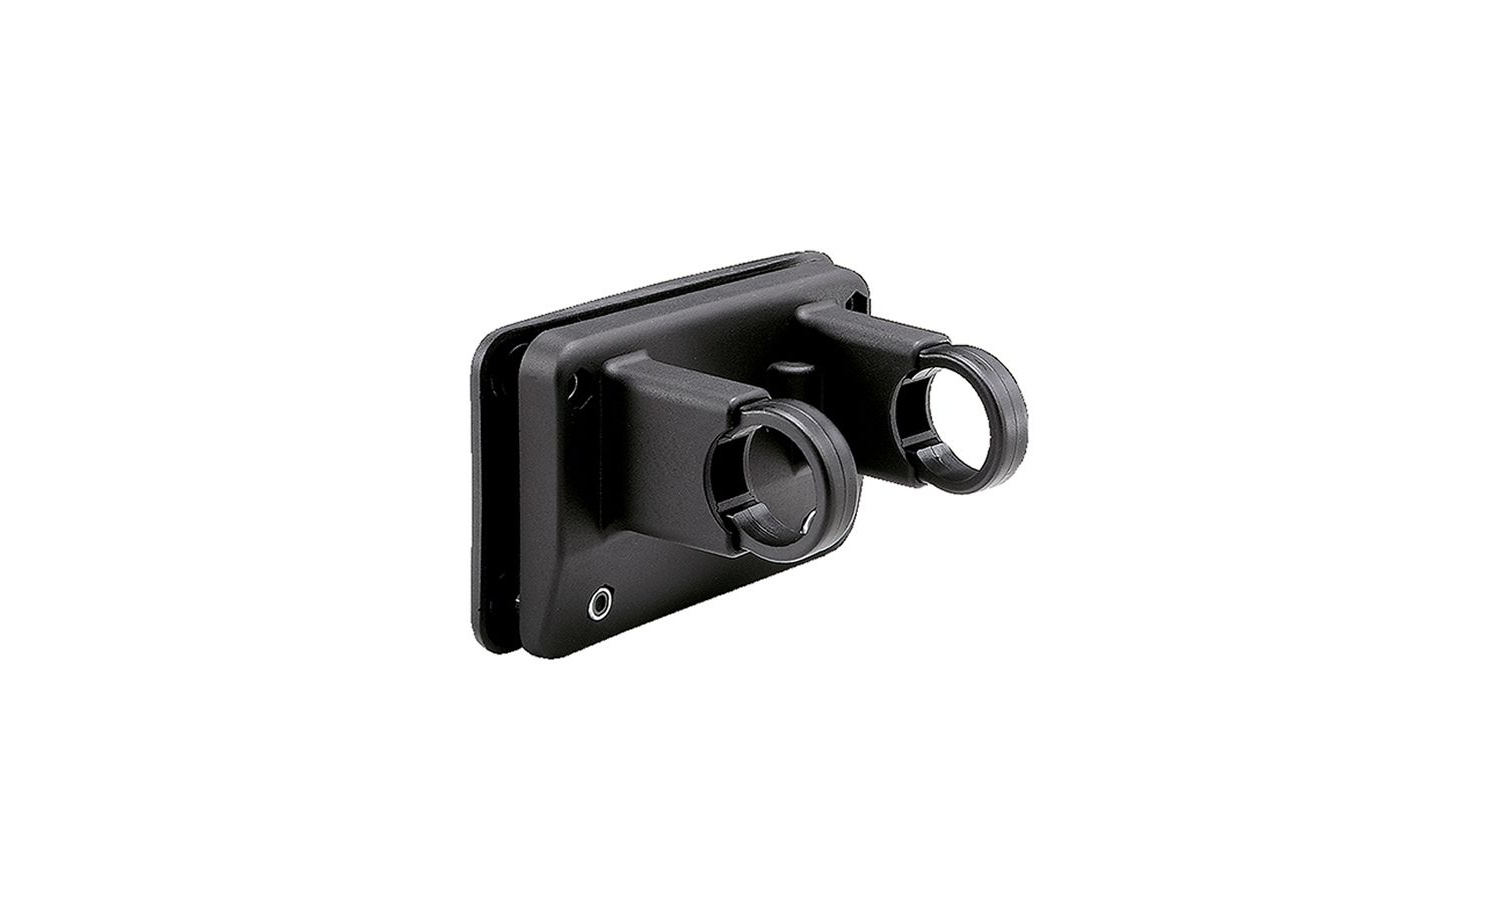 Klickfix handlebar adapter fixed mounting